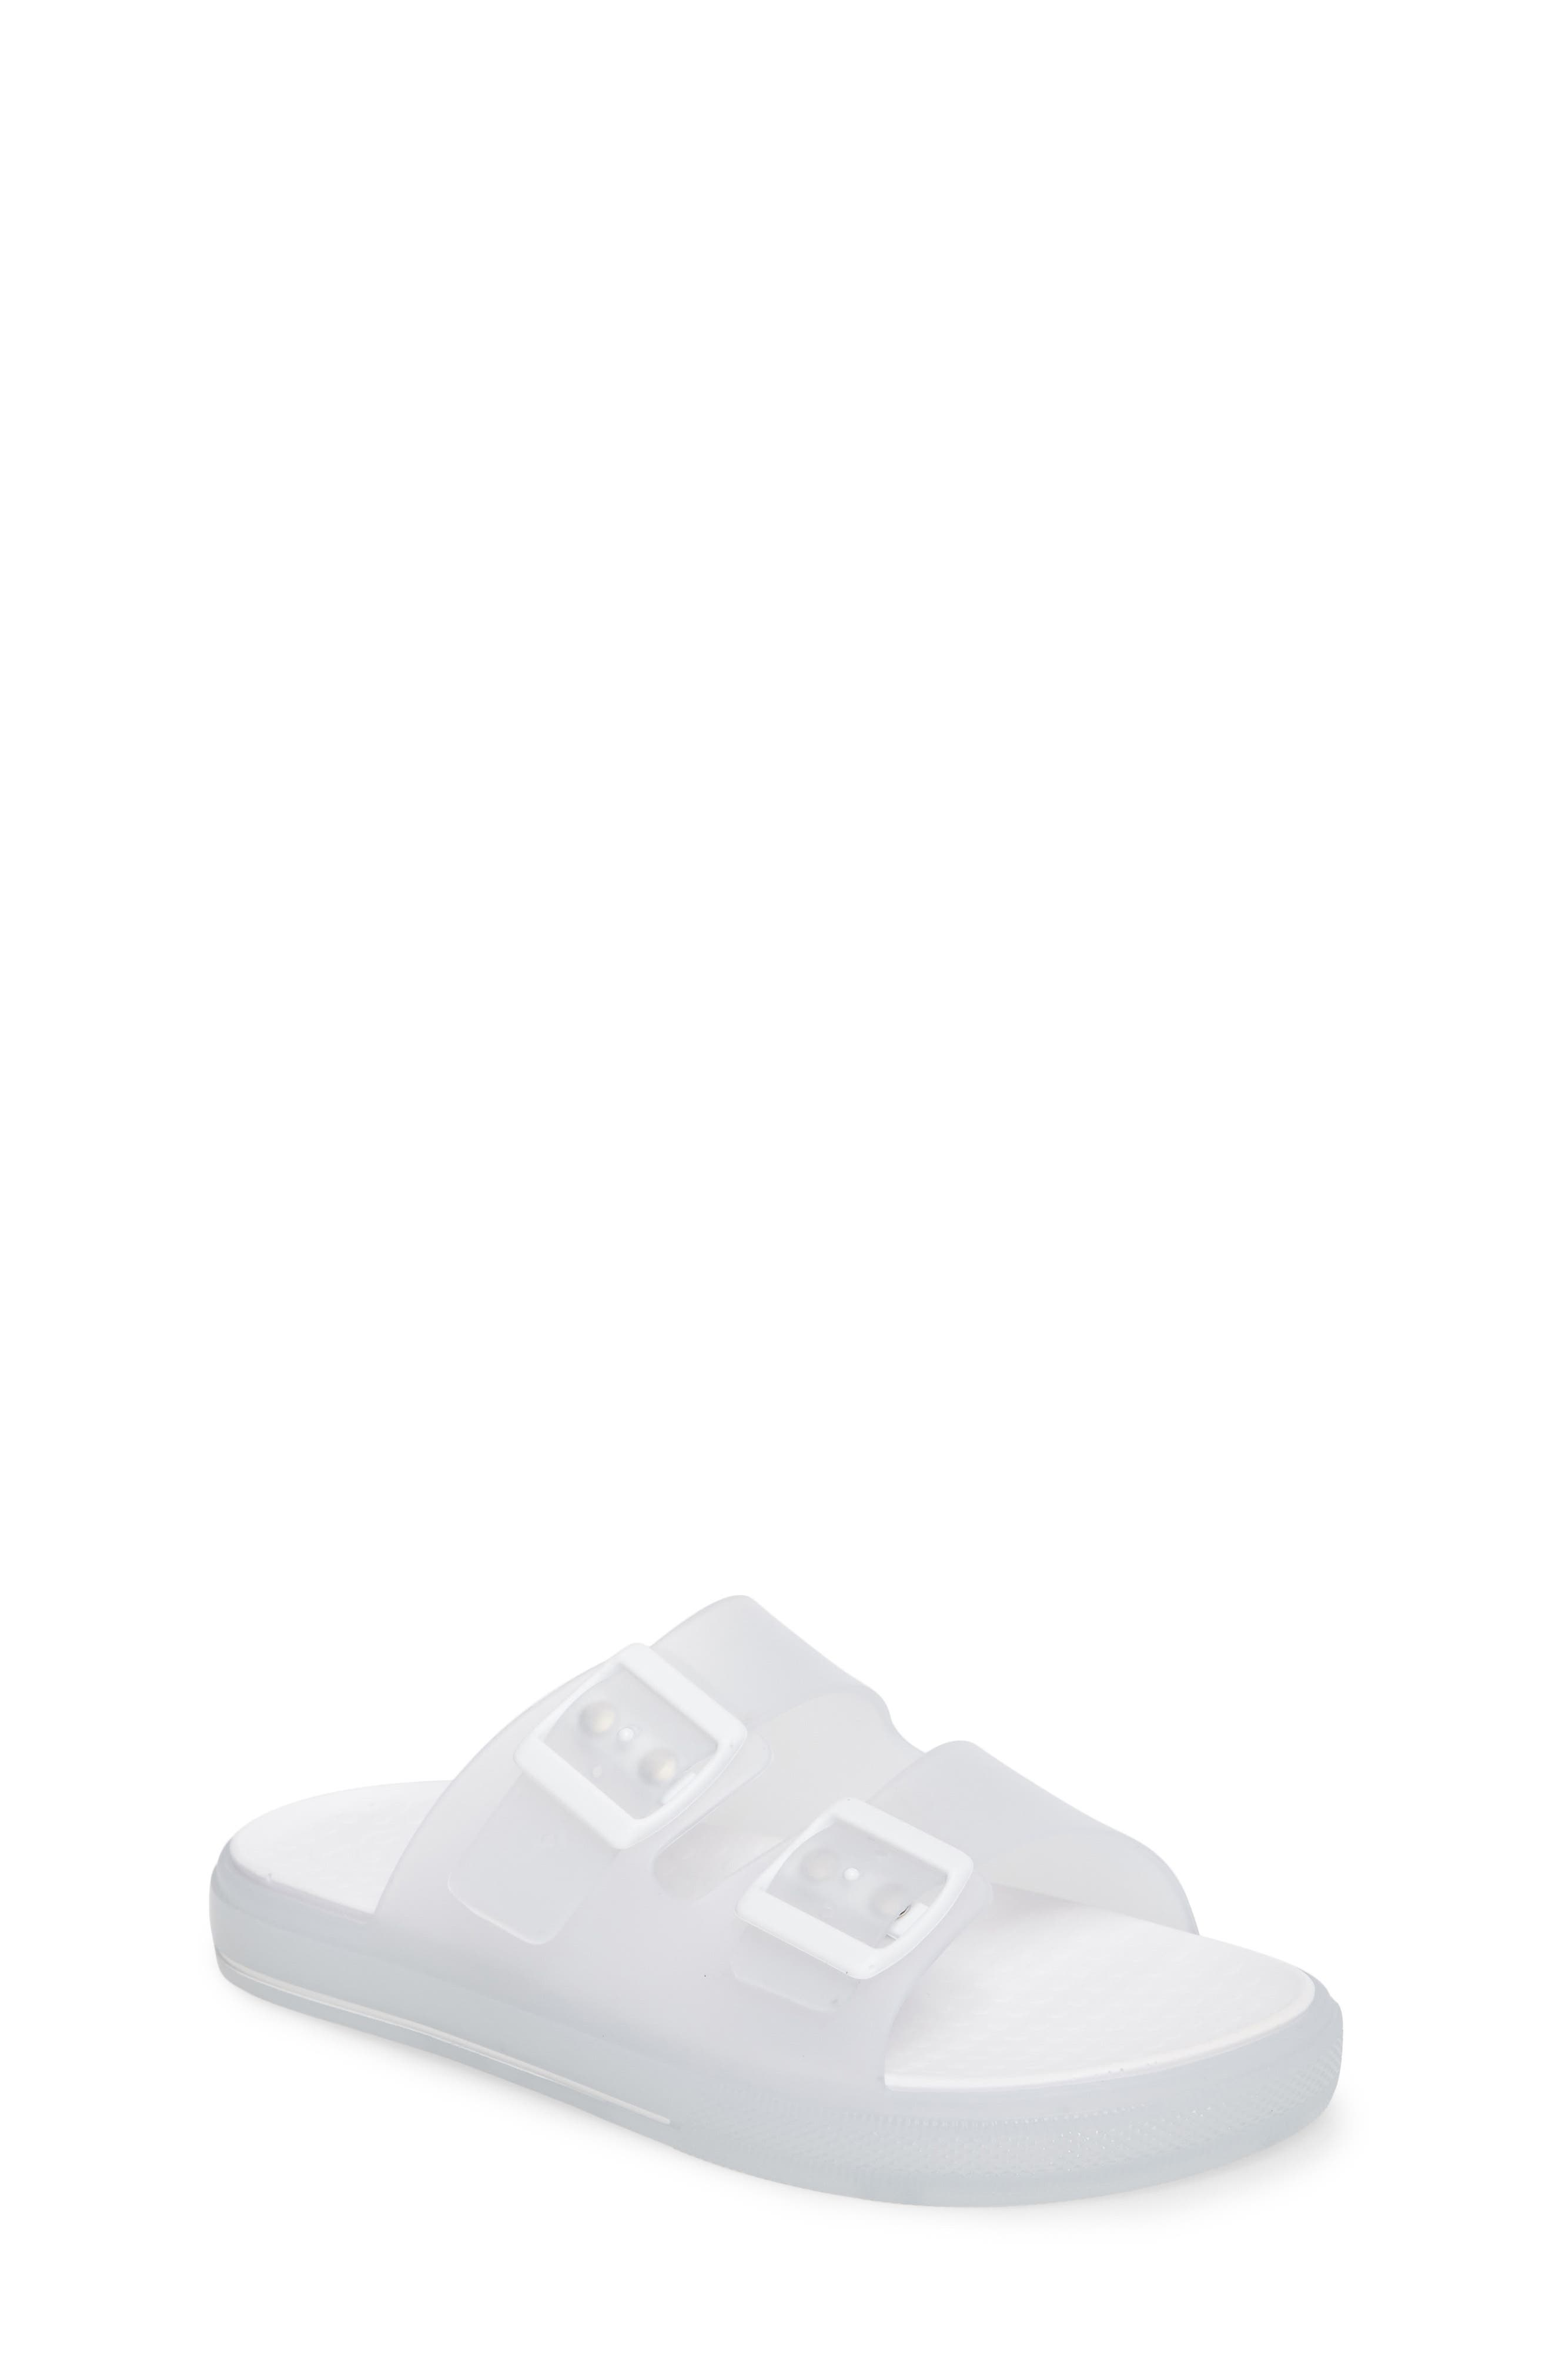 Igor Maui Slide Sandal (Toddler & Little Kid)